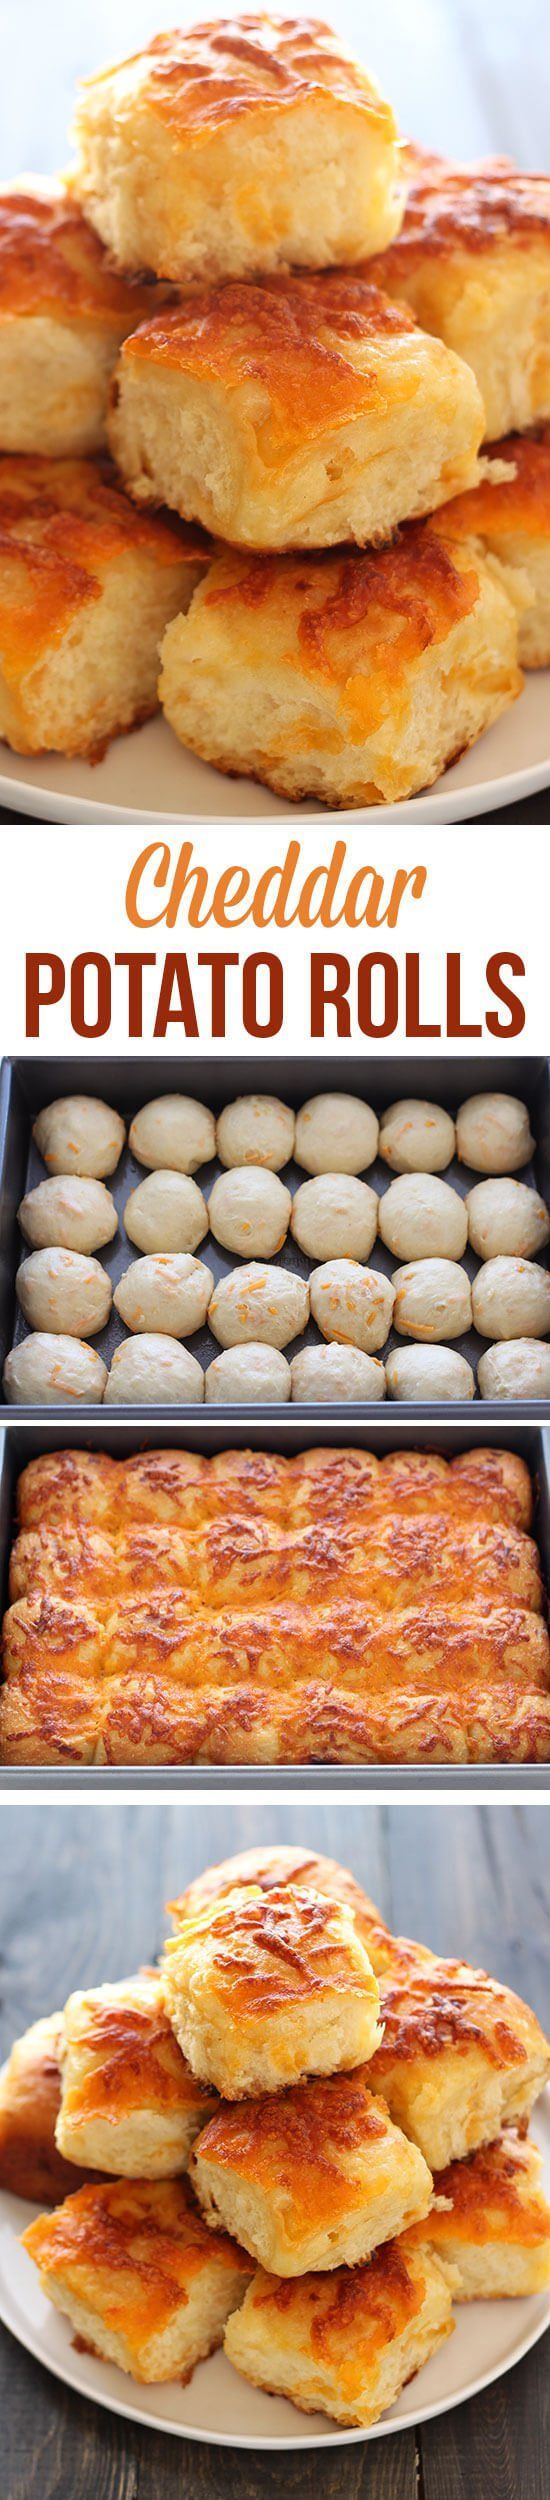 Cheddar Potato Rolls Recipe | Buzz Inspired